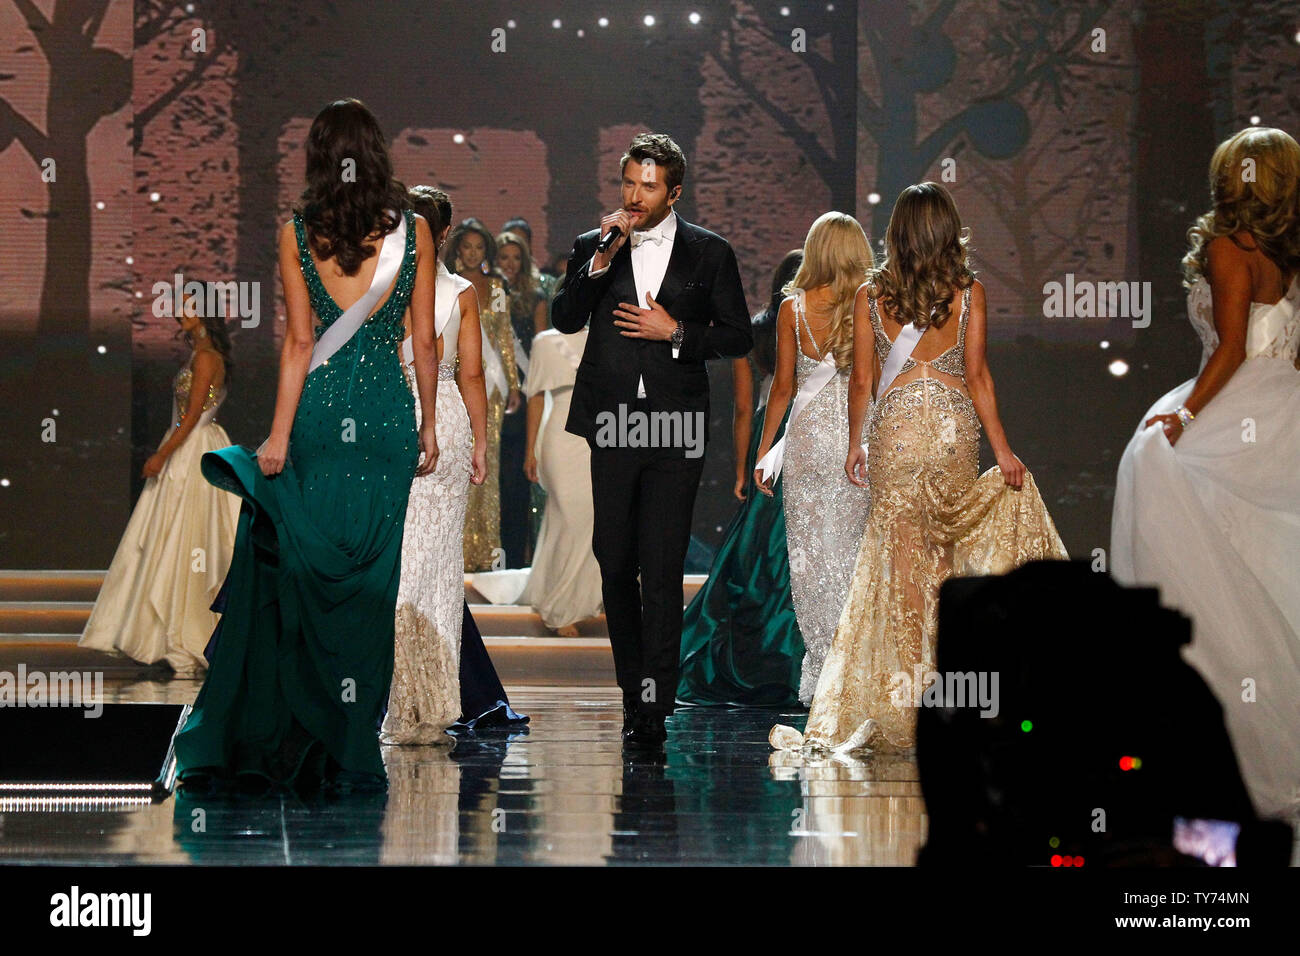 Country music singers Brett Eldredge serenades contestants onstage during the 2017 Miss USA Competition, Mandalay Bay Resort and Casino on May 14, 2017. Photo by James Atoa/UPI - Stock Image